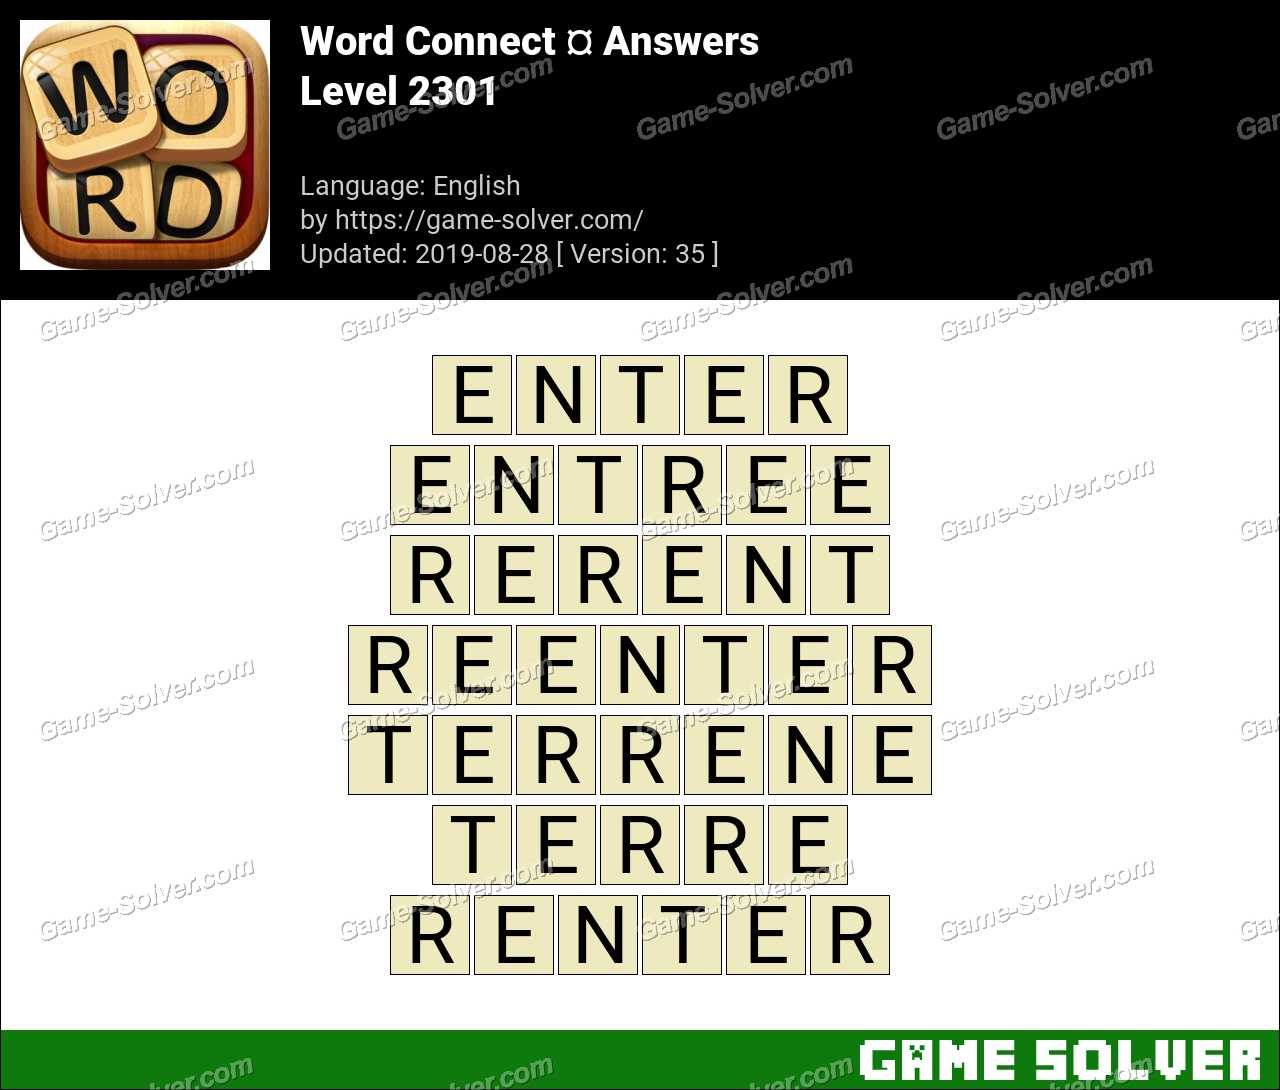 Word Connect Level 2301 Answers